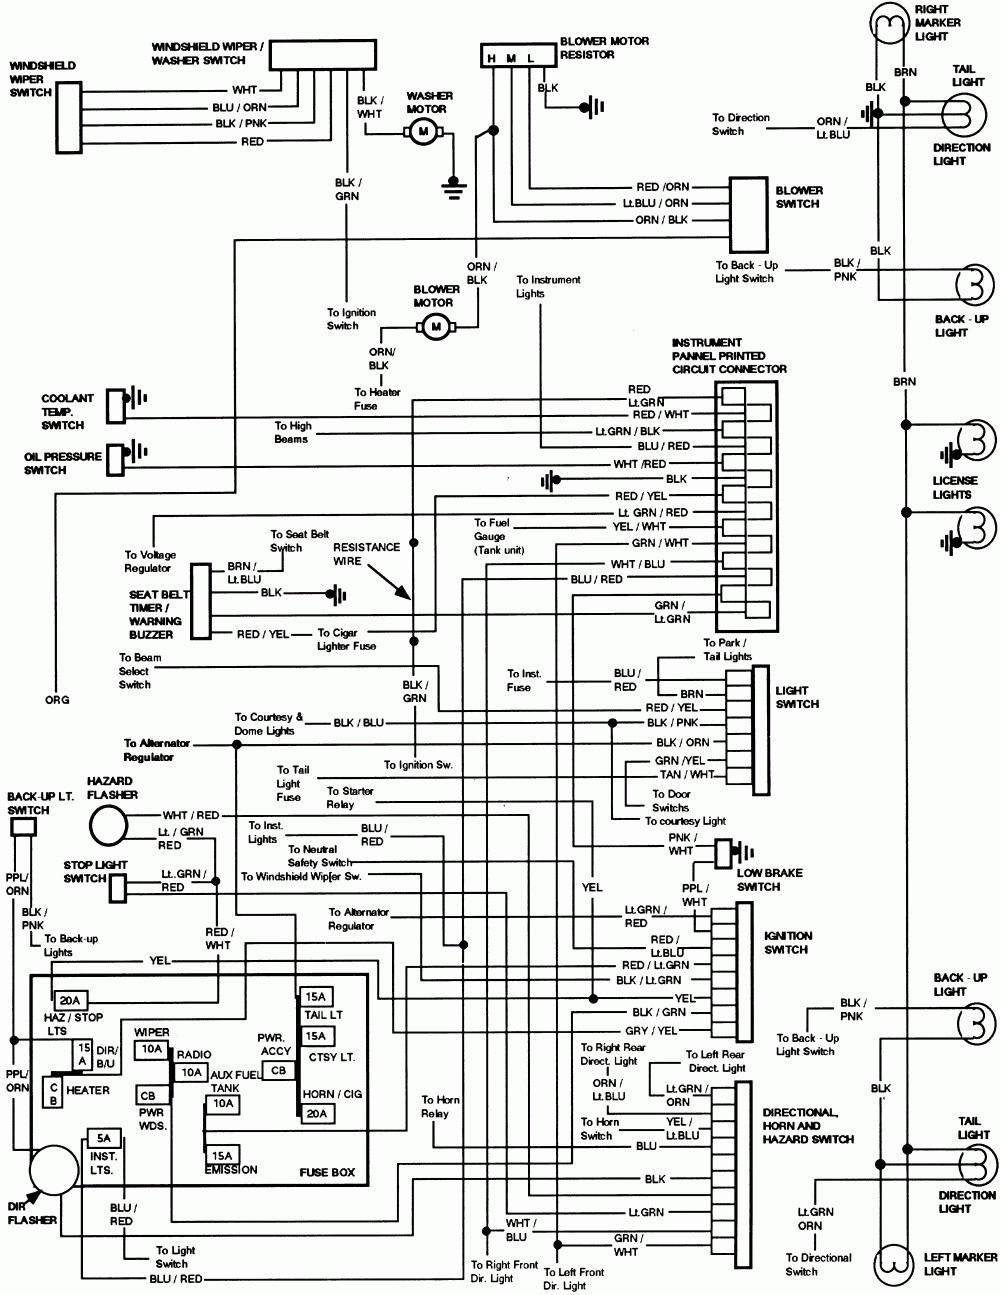 hight resolution of 87 ford ignition system wiring diagram wiring diagram paper 1987 ford e250 wiring diagram wiring diagram